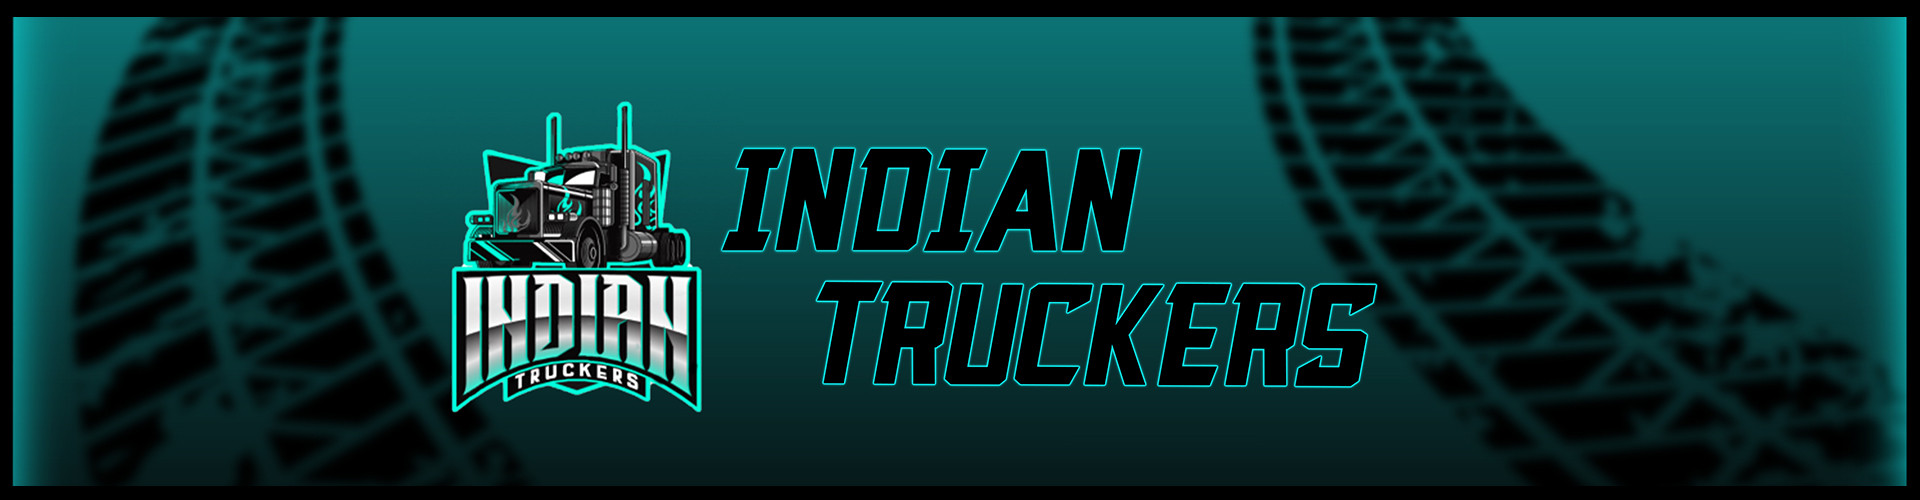 INDIAN TRUCKERS 9th Public Convoy